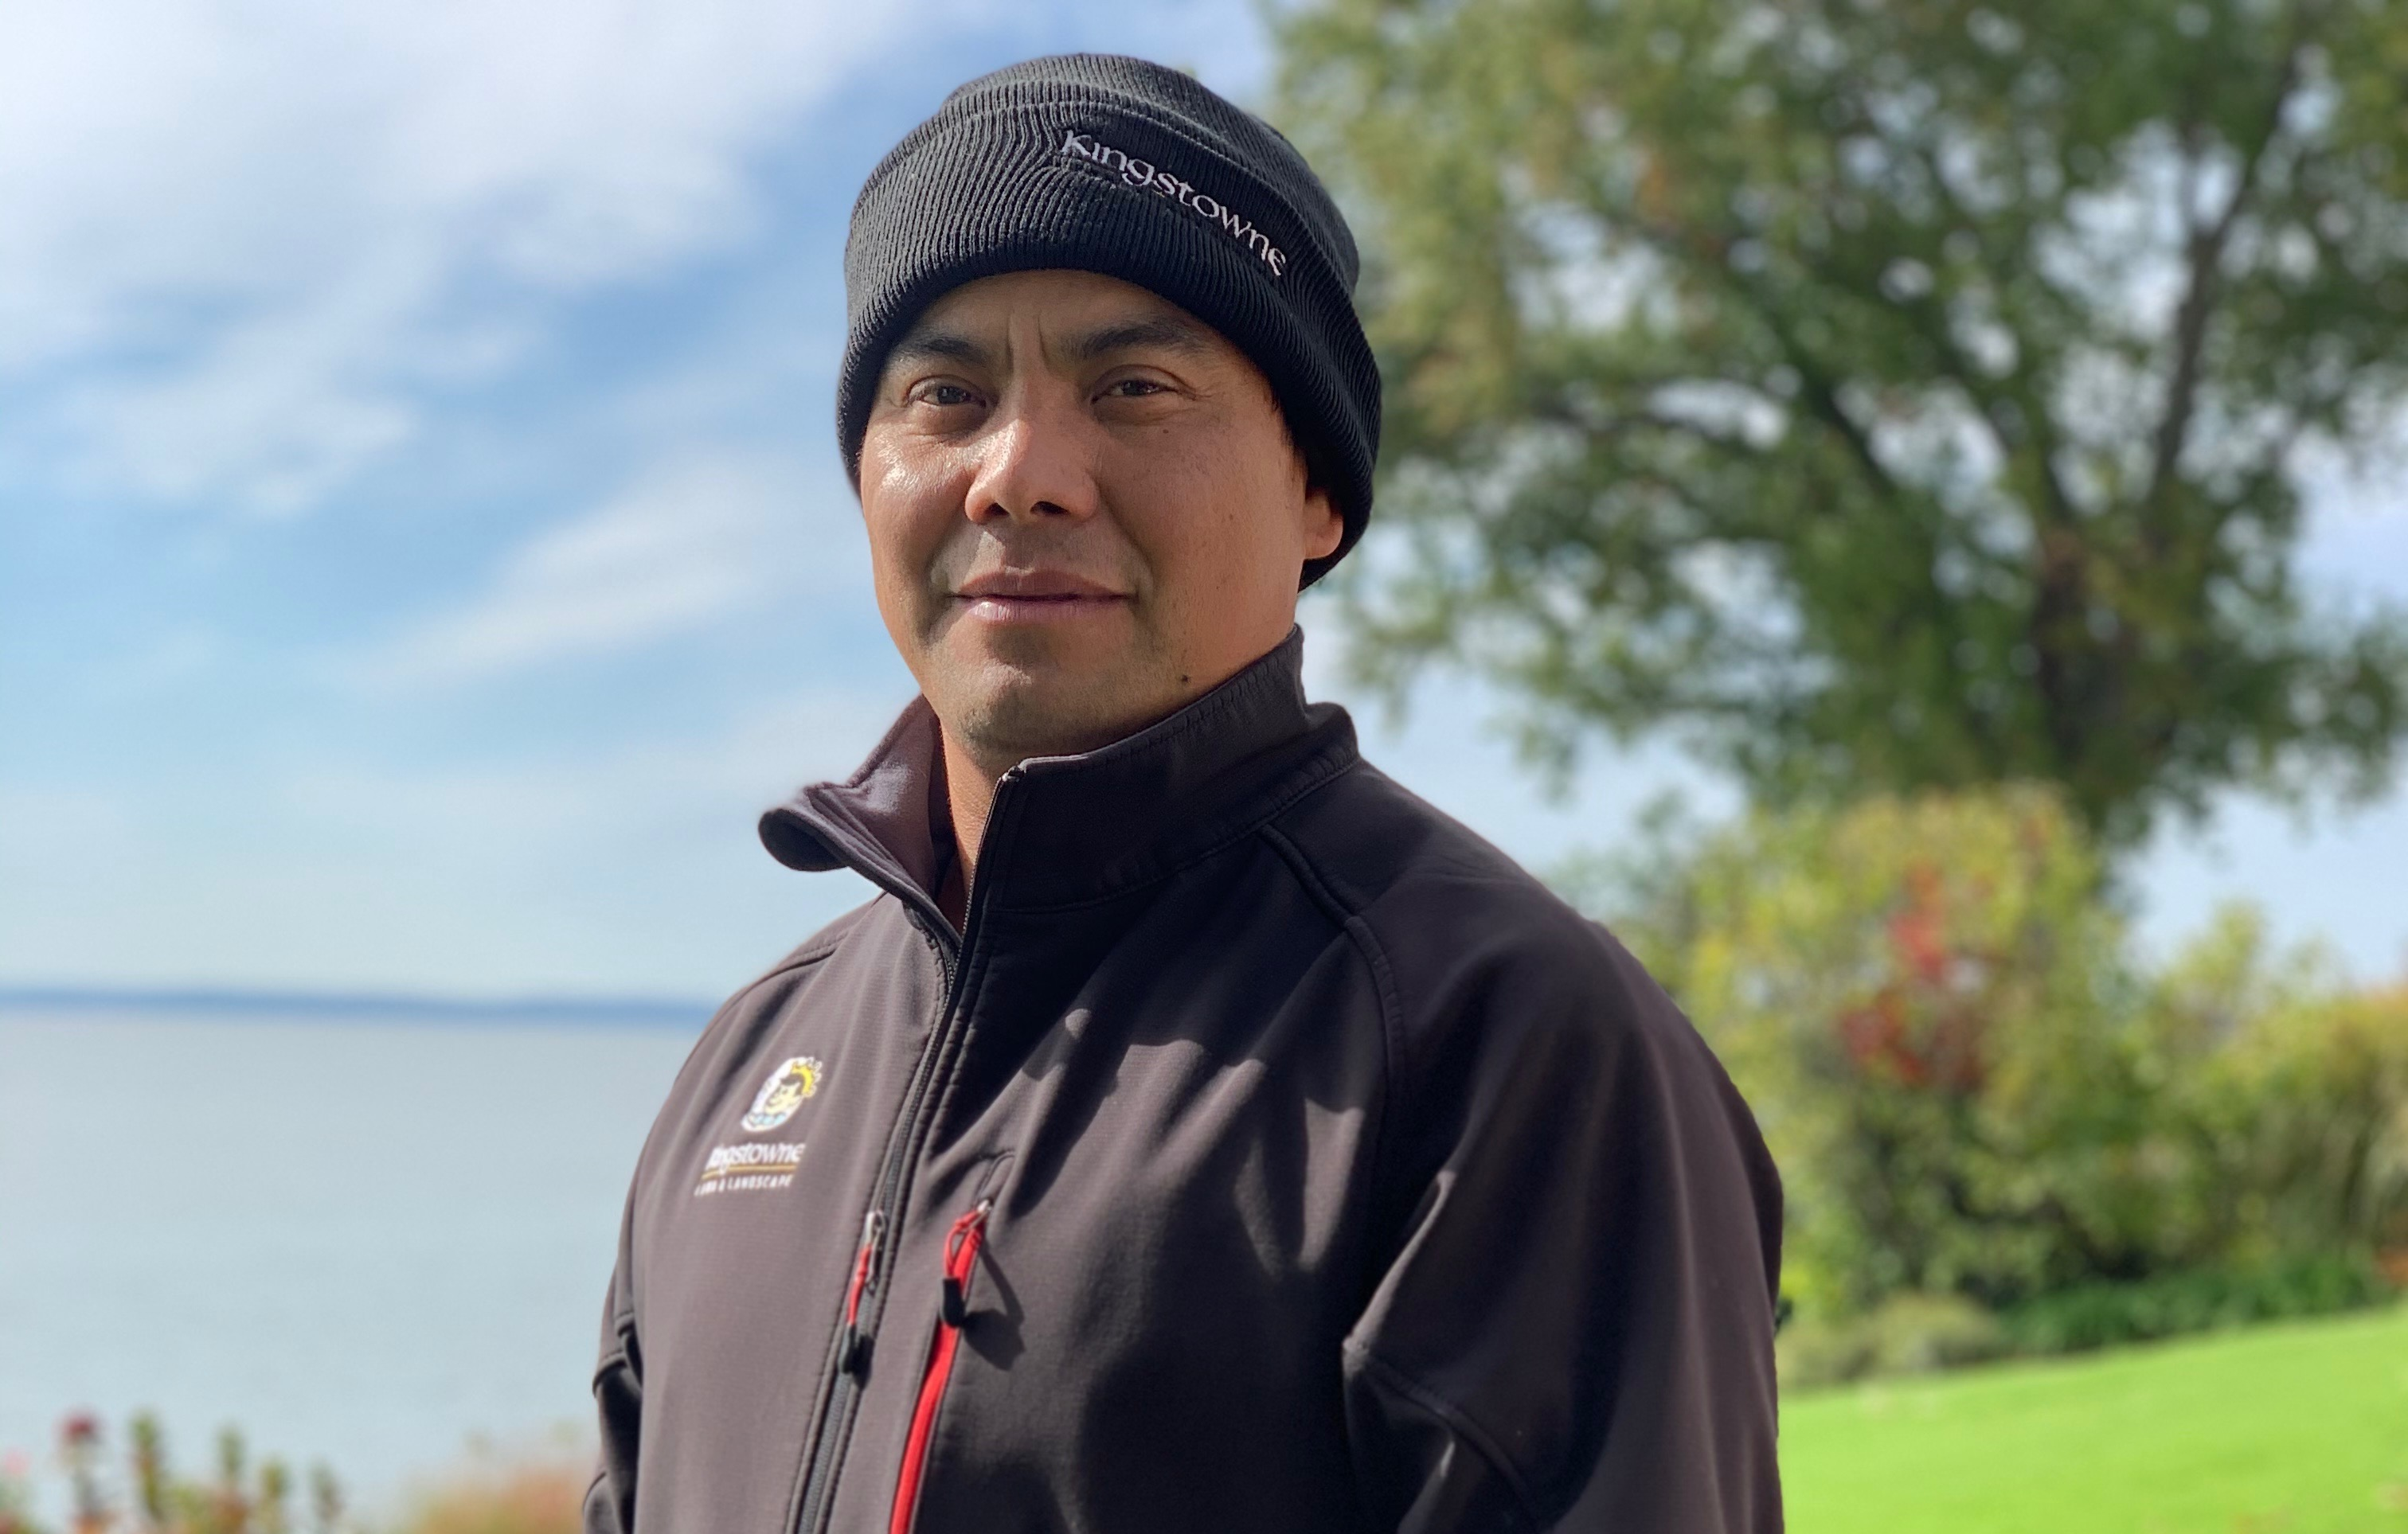 Meet Marvin Orellana: His Rewarding Landscaping Career & Why Our Clients Love Him